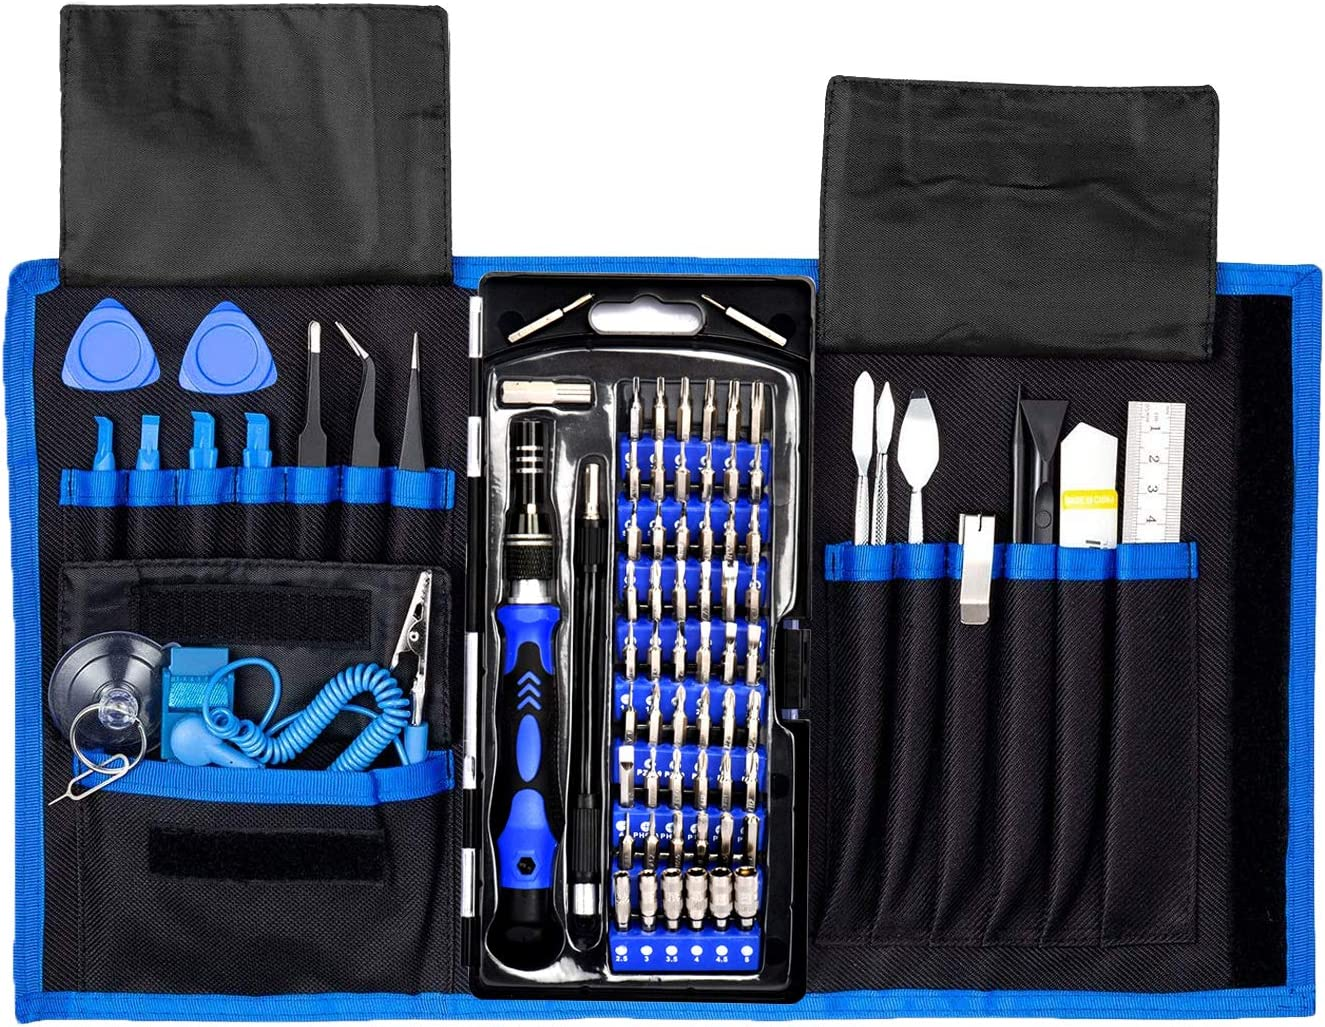 Precision Computer Repair Tool Kit, Professional Electronic Screwdriver Set, with a Small Torx Screwdriver, Suitable for Laptop, MacBook, iMac, PC, Cell Phone, iPhone and Other Electronics Maintenance